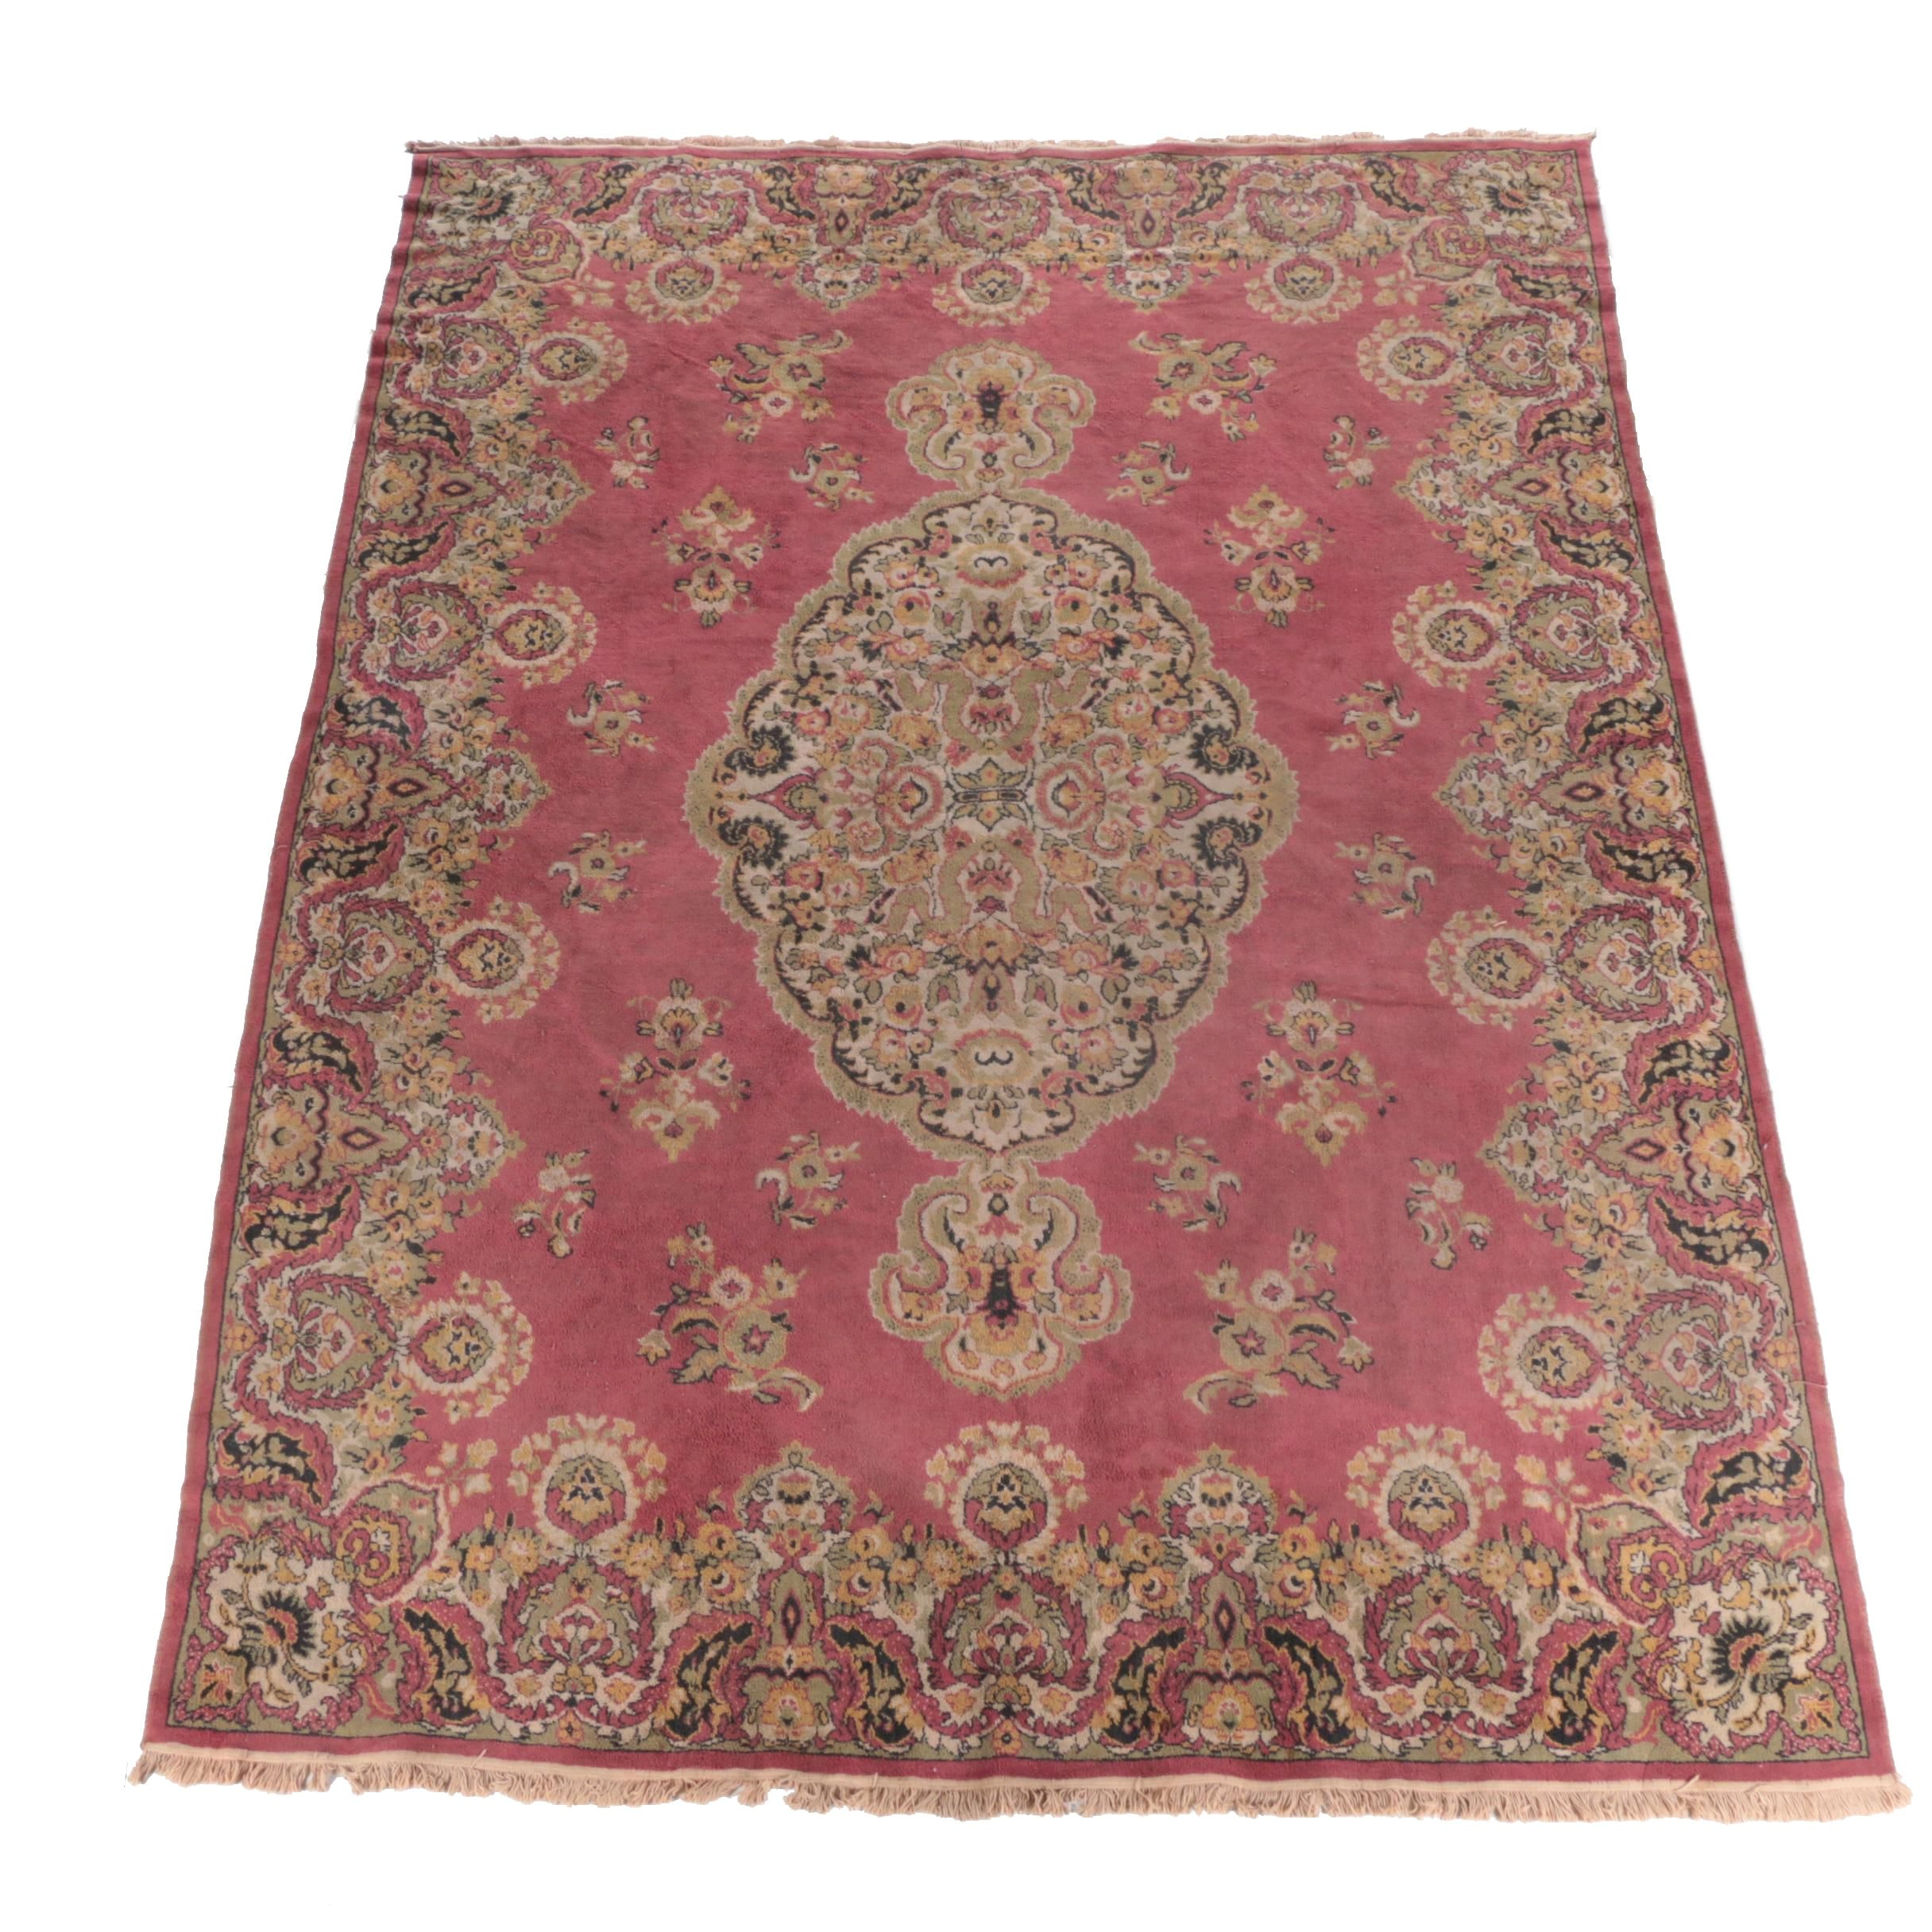 Vintage Power-Loomed Persian-Style Room Size Rug